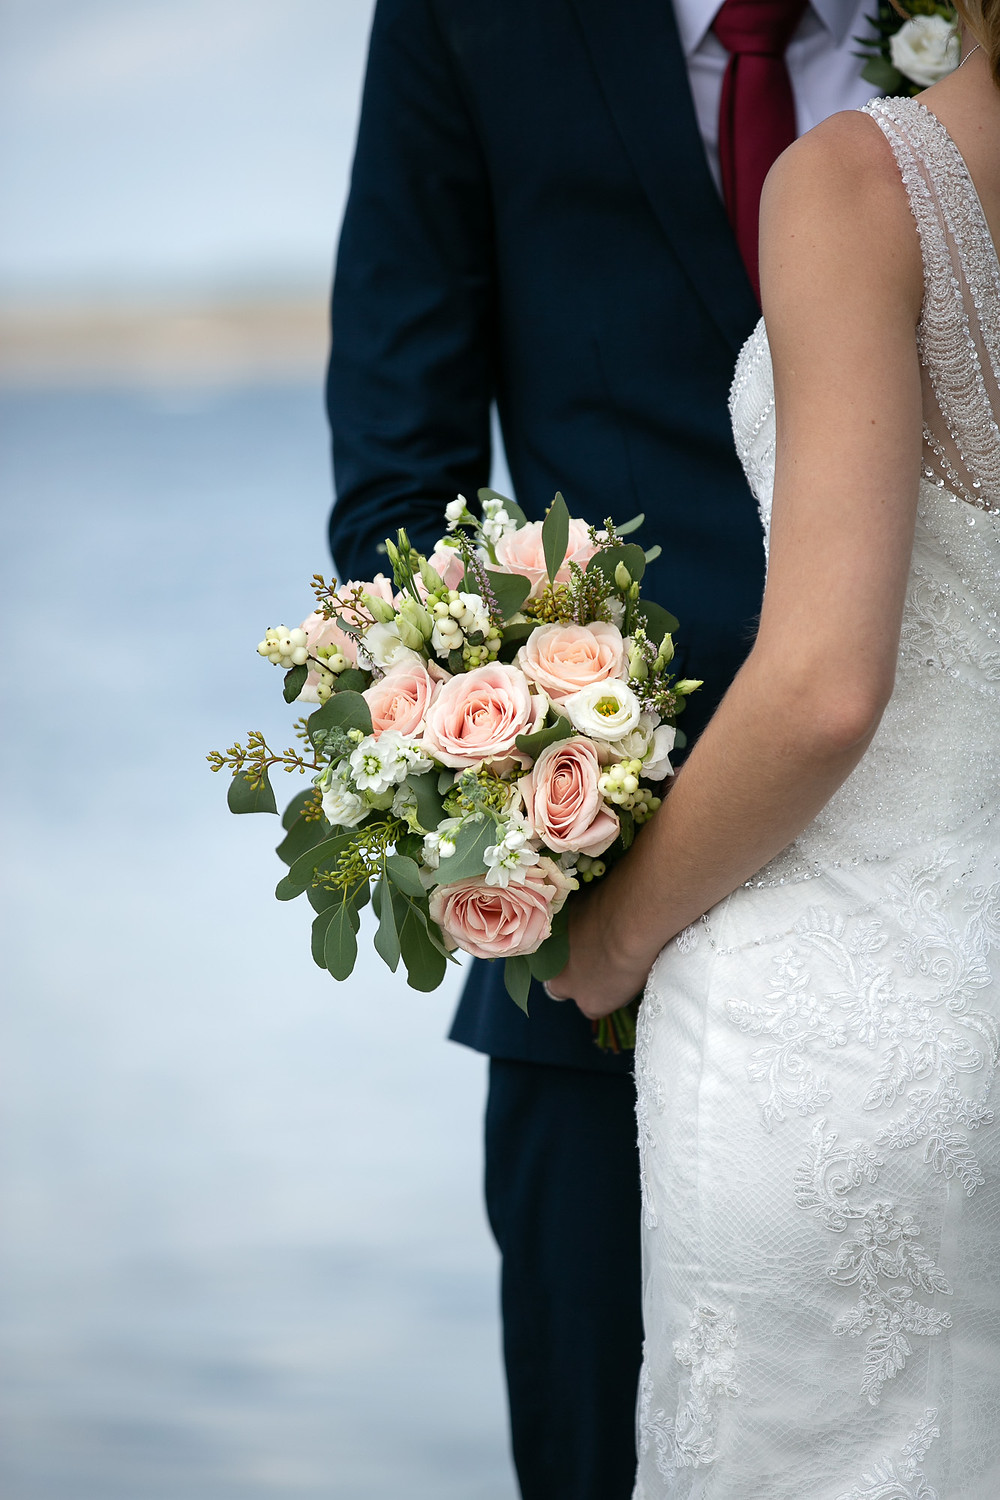 Bride and groom holding pink and cream bouquet of flowers